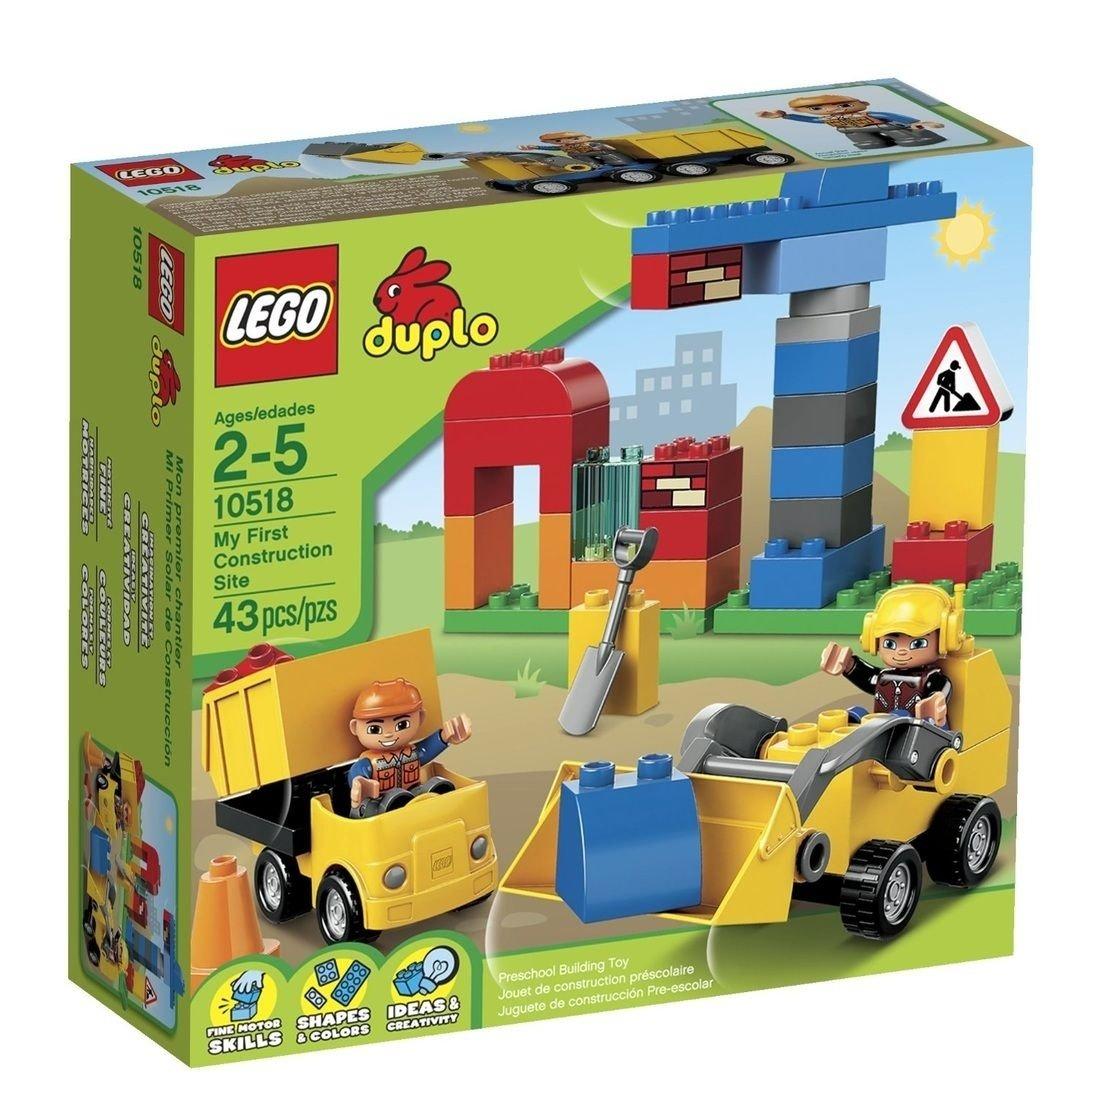 10 Amazing Gift Idea For 4 Year Old Boy top toys for 4 year old boys top toys remember these